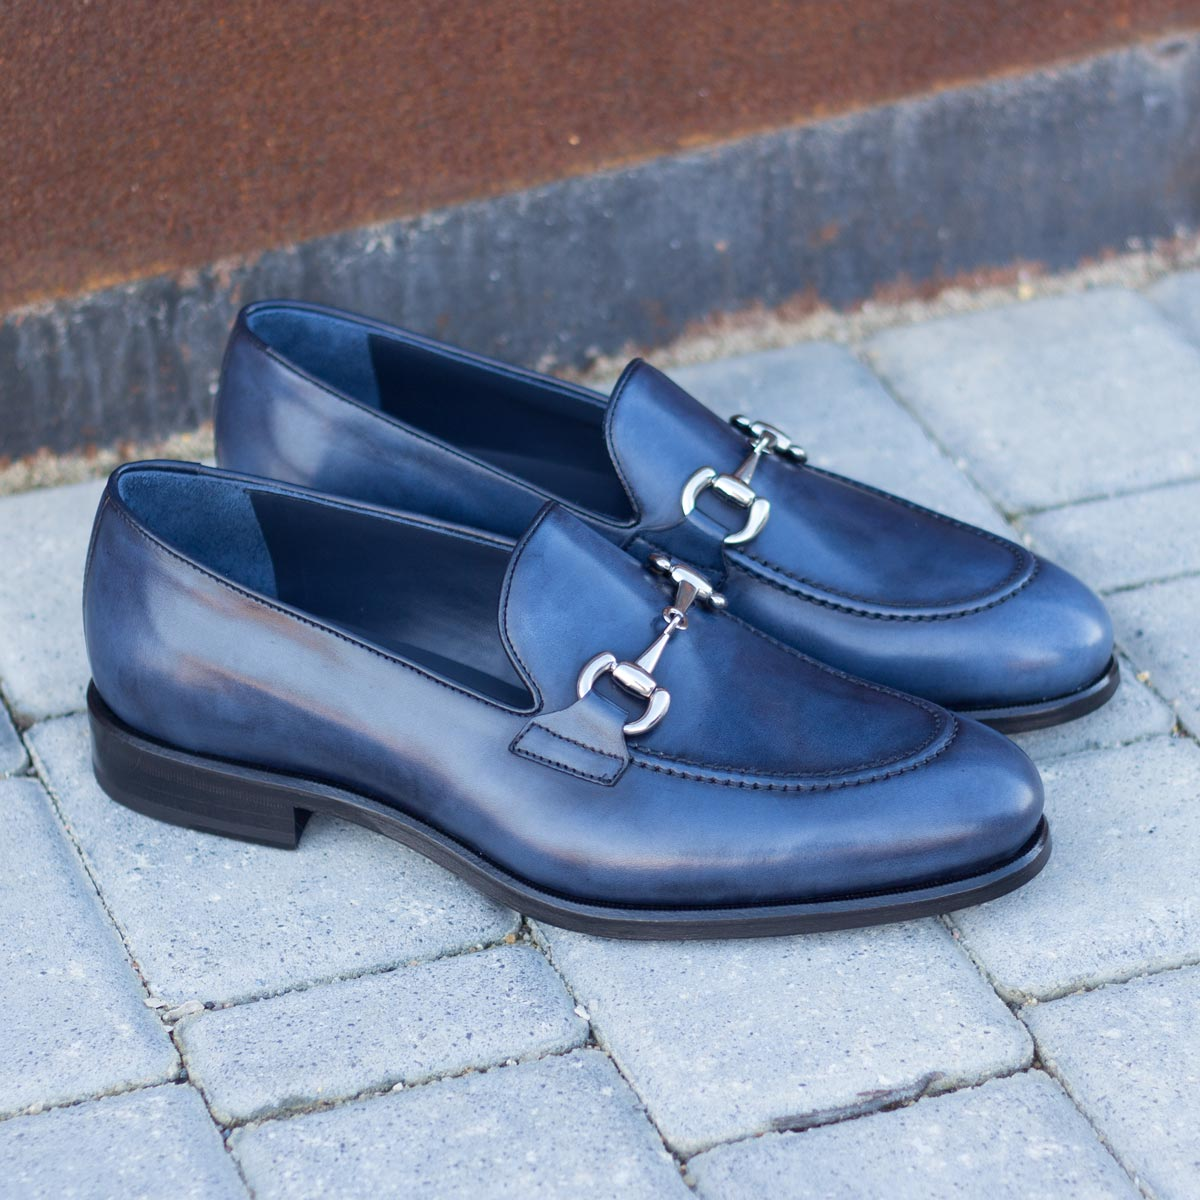 Loafer navy box calf + navy painted calf : 240€